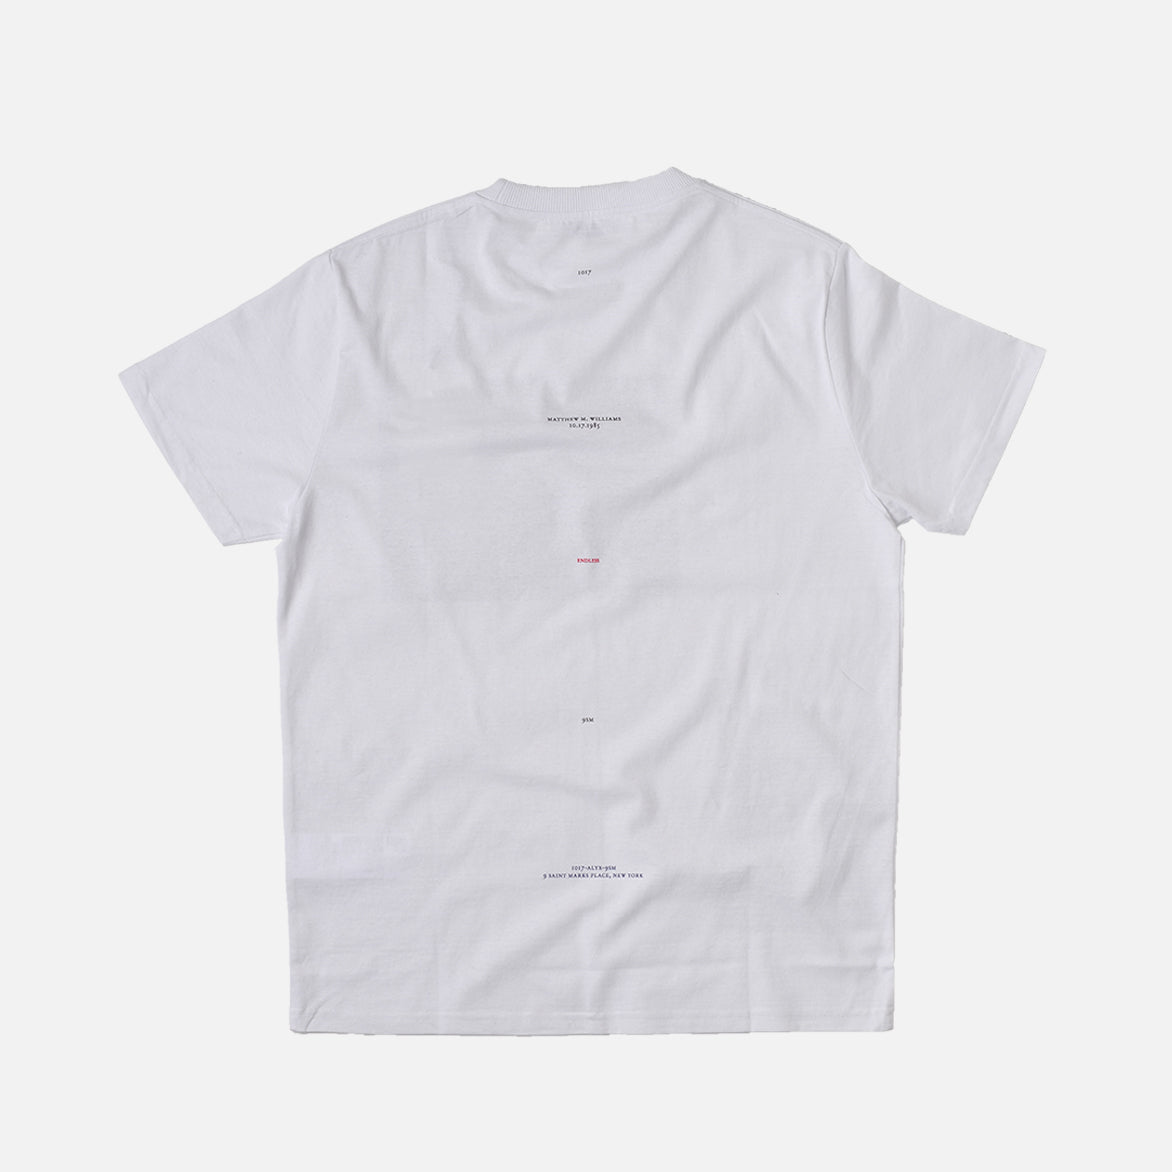 FLAG RING S/S TEE - WHITE